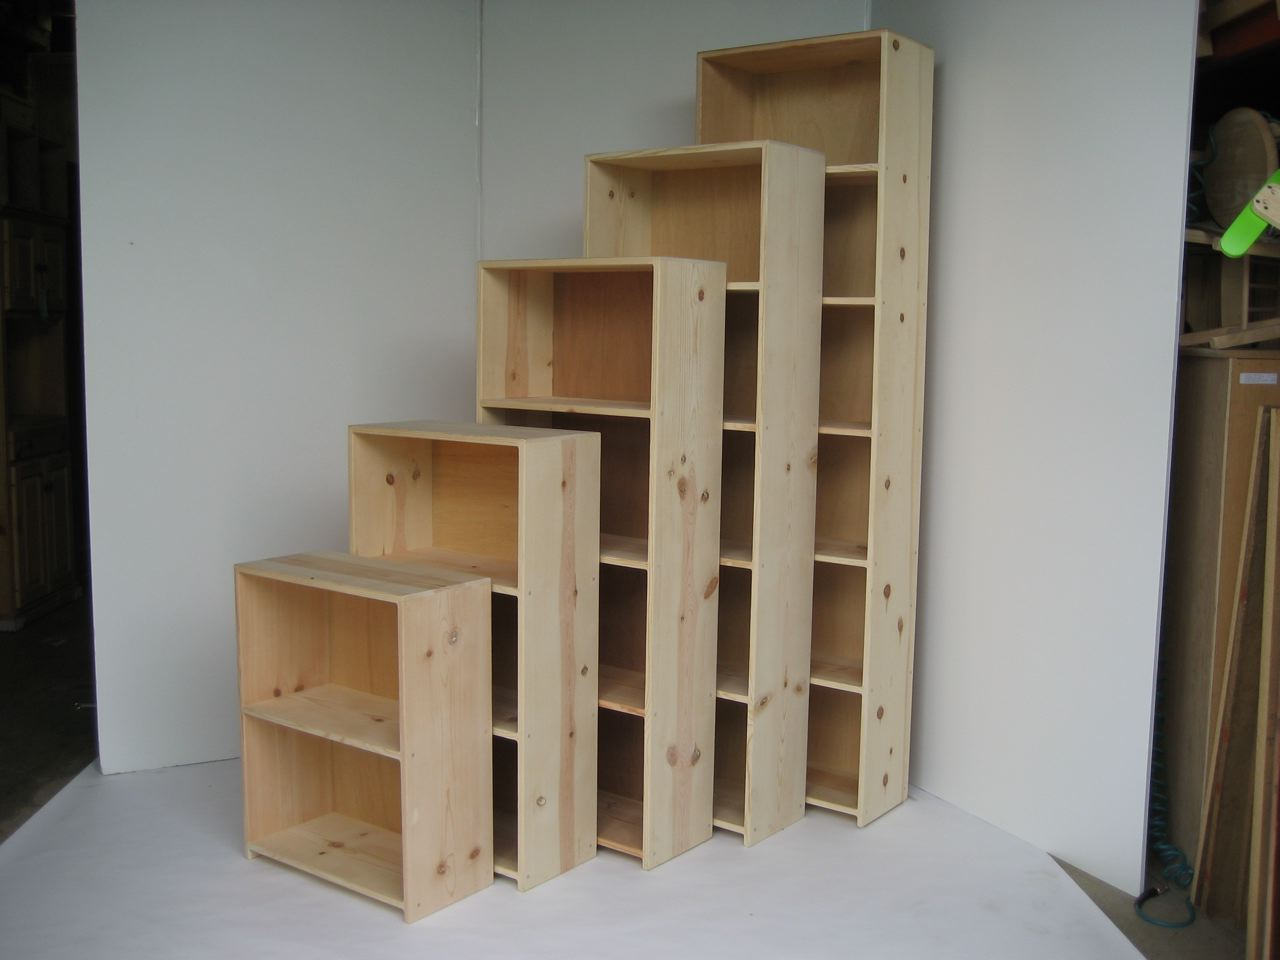 #664A2F Stumasa: 11.25 Deep R Style Record Spaced Bookcases Fixed S  with 1280x960 px of Recommended Deep Shelves Bookcase 9601280 save image @ avoidforclosure.info